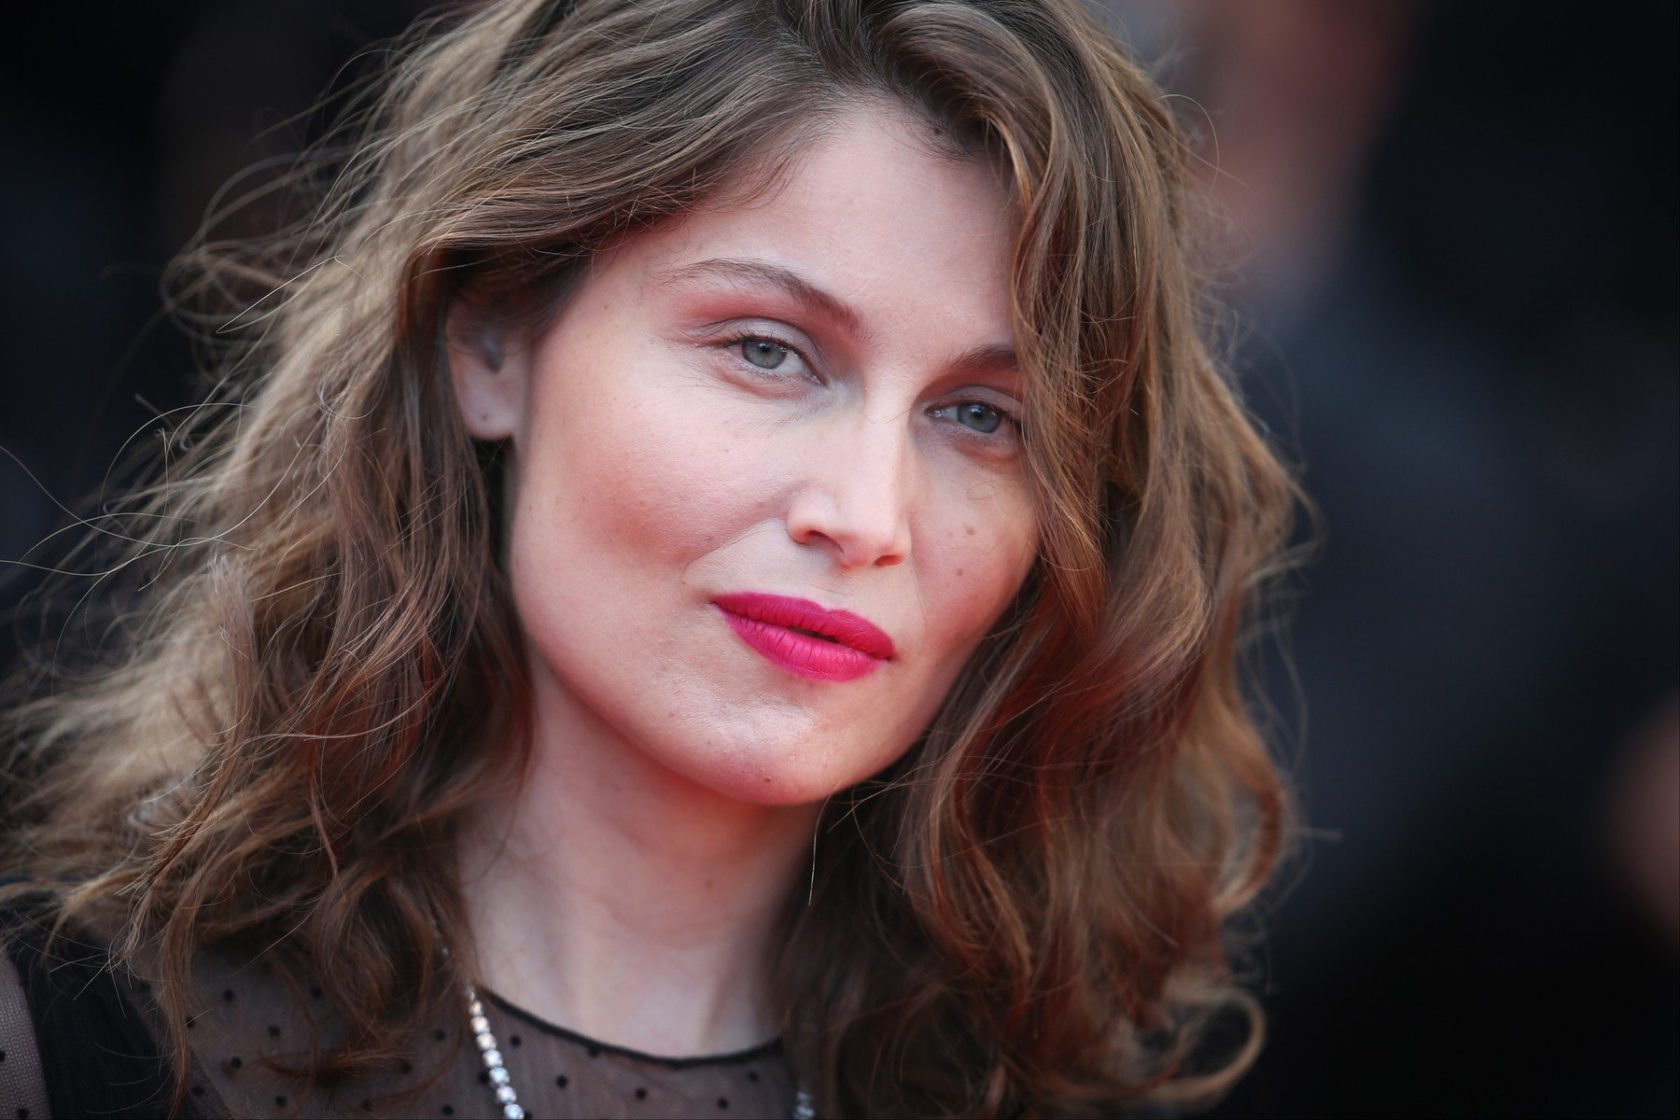 Laetitia Casta attends the 70th Anniversary of the 70th annual Cannes Film Festival at Palais des Festivals on May 23, 2017 in Cannes, France., Image: 333354085, License: Rights-managed, Restrictions: Worldwide rights, Model Release: no, Credit line: Profimedia, Crystal pictures